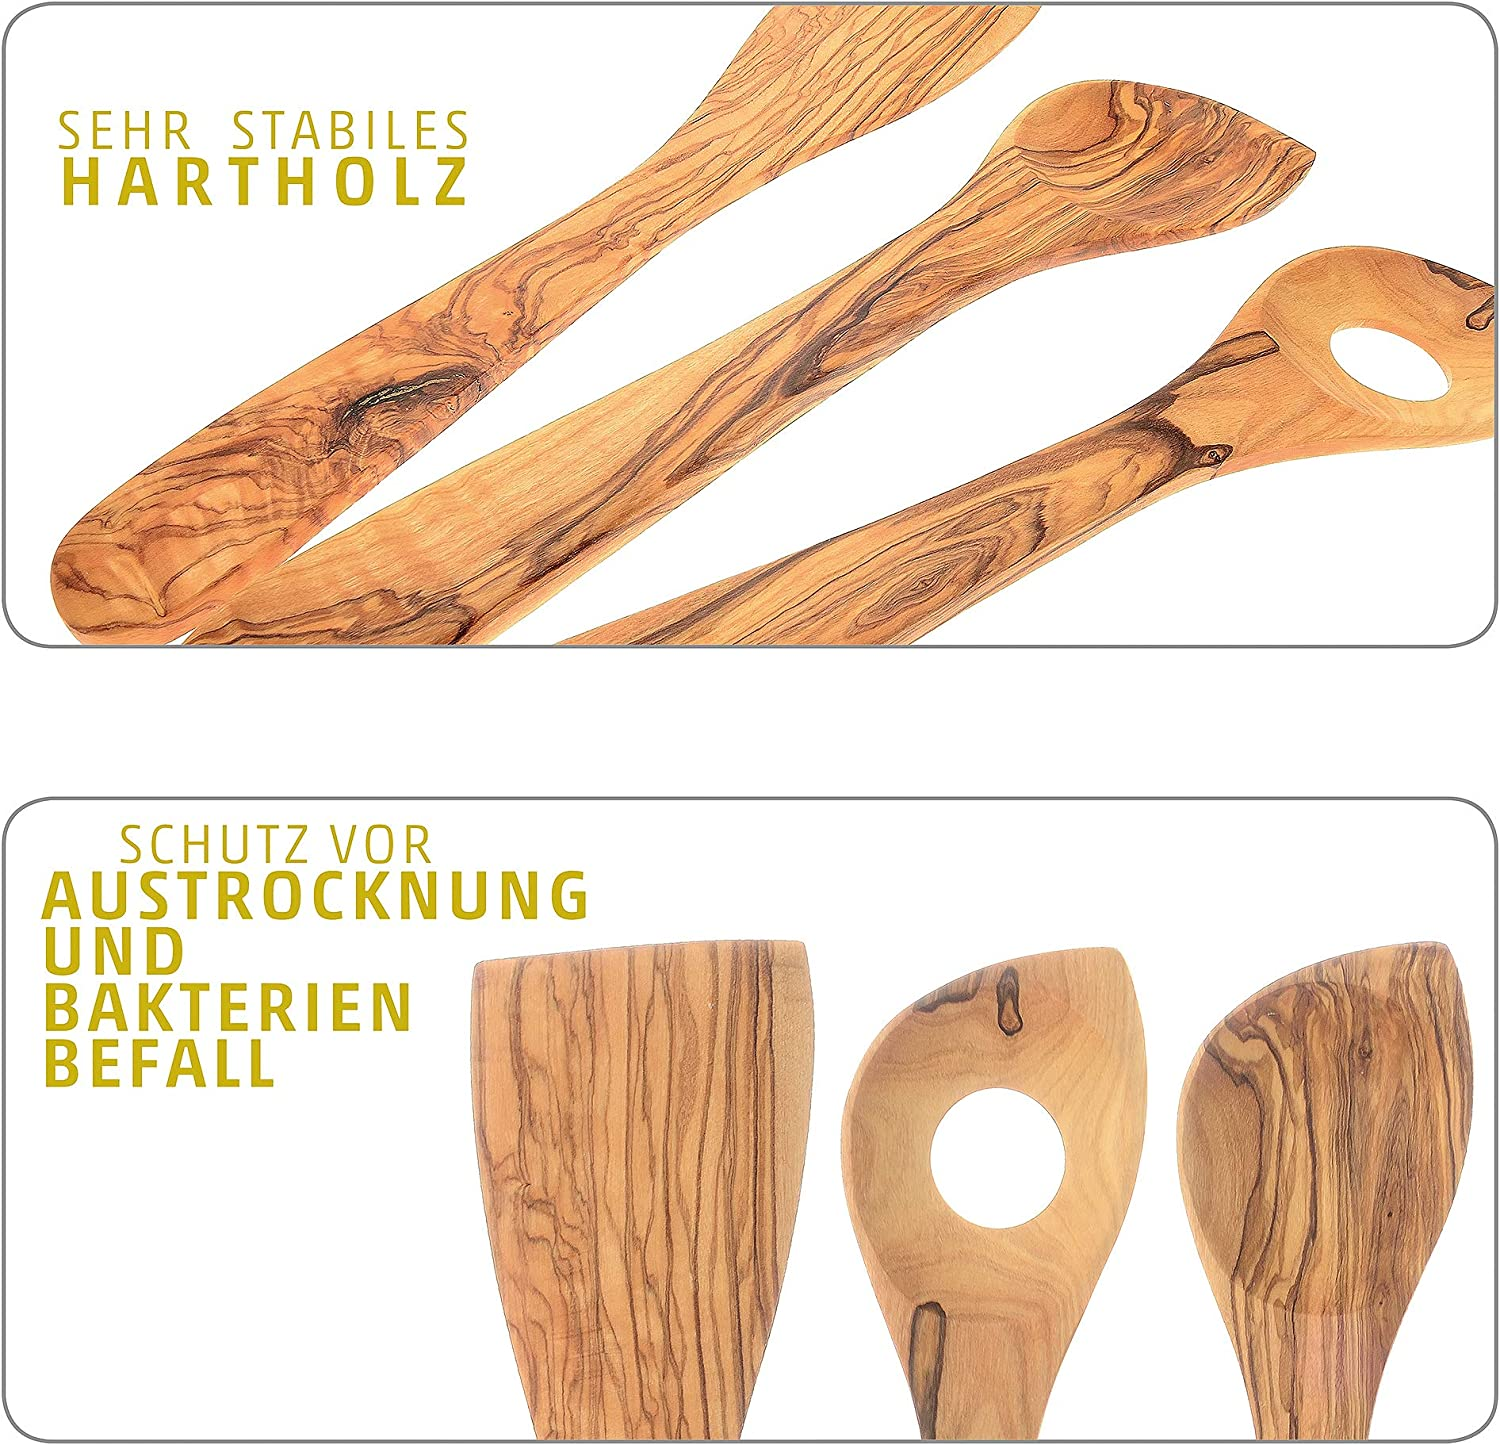 Olive Wood Kitchen Set of 3 by 4smile ǀ Turner Corner Spoon Stirring Spoon Made of 100/% Olive Wood ǀ Kitchen Utensils untreated Natural Products